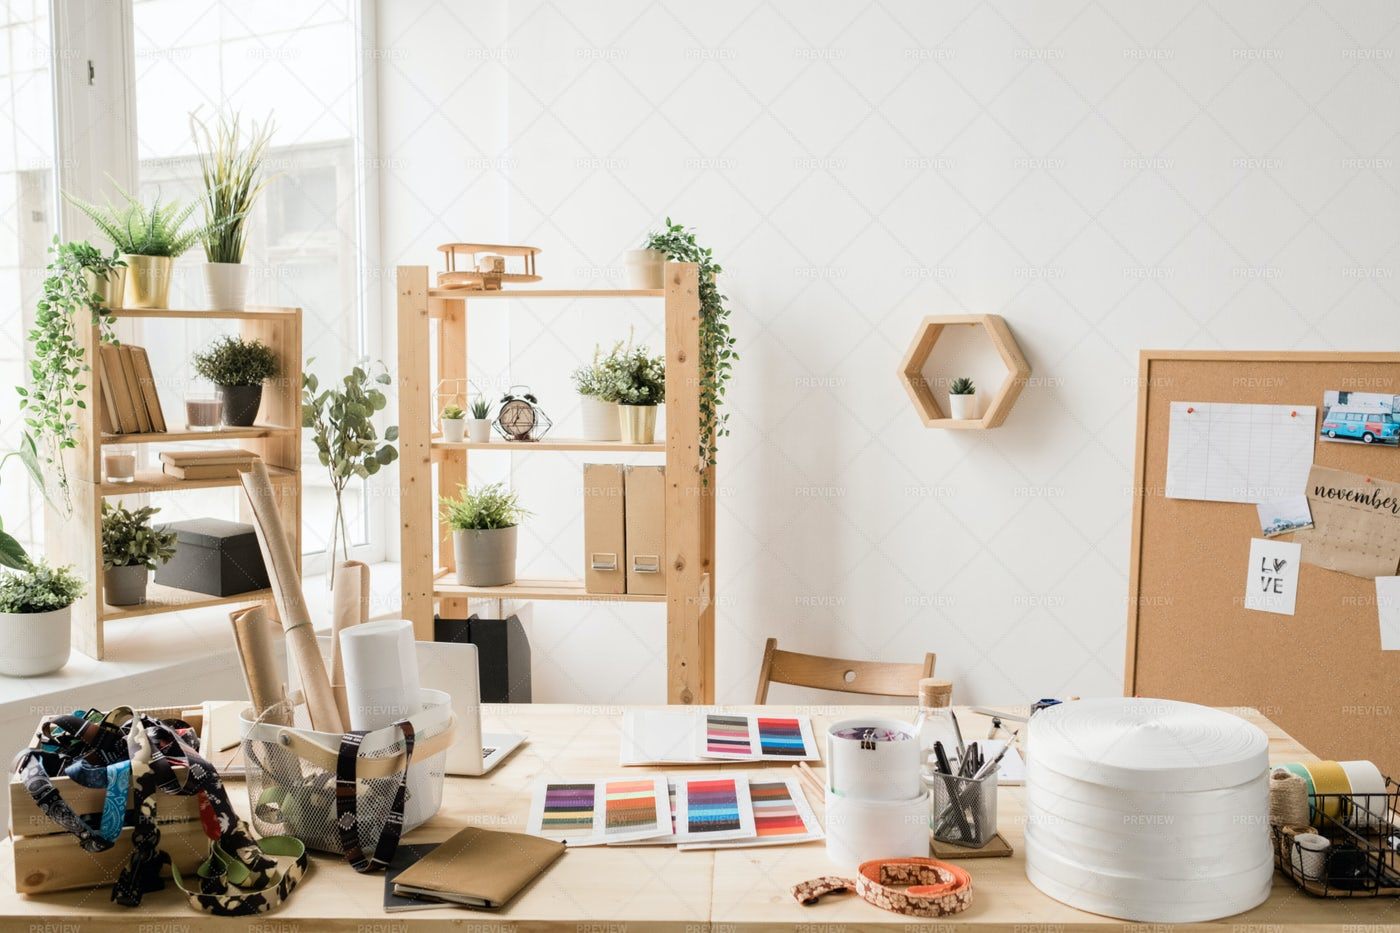 Wooden Table By Window With Various...: Stock Photos